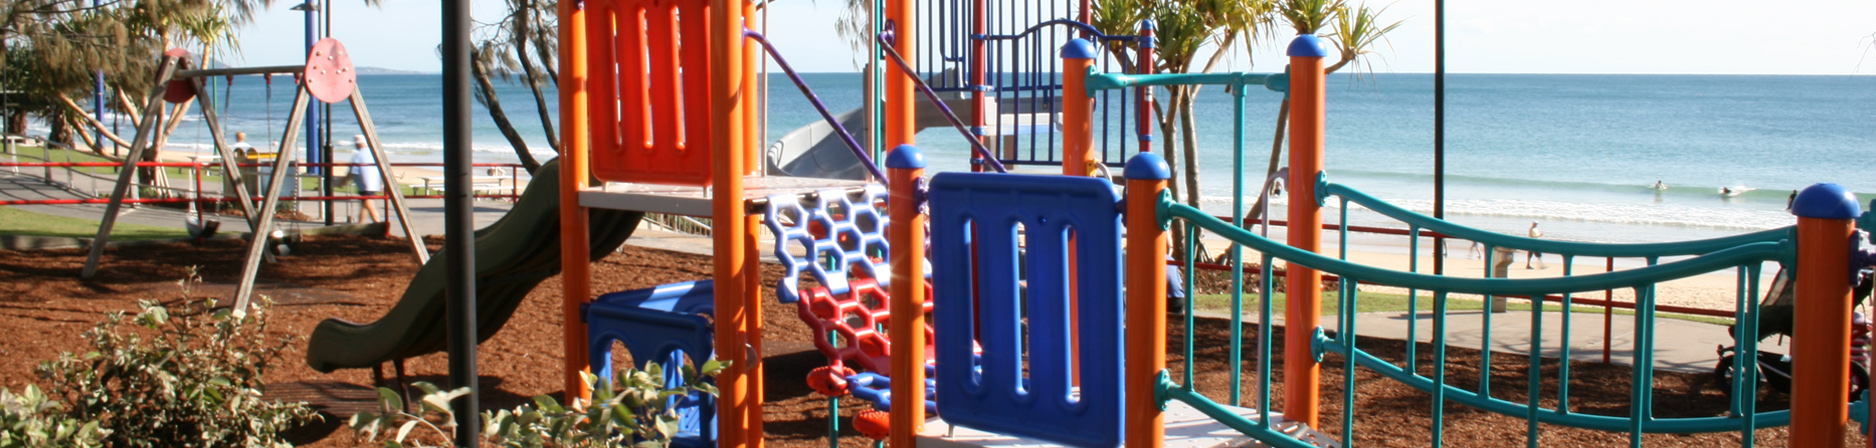 Colourful playground with a pathway and Mooloolaba beach in background